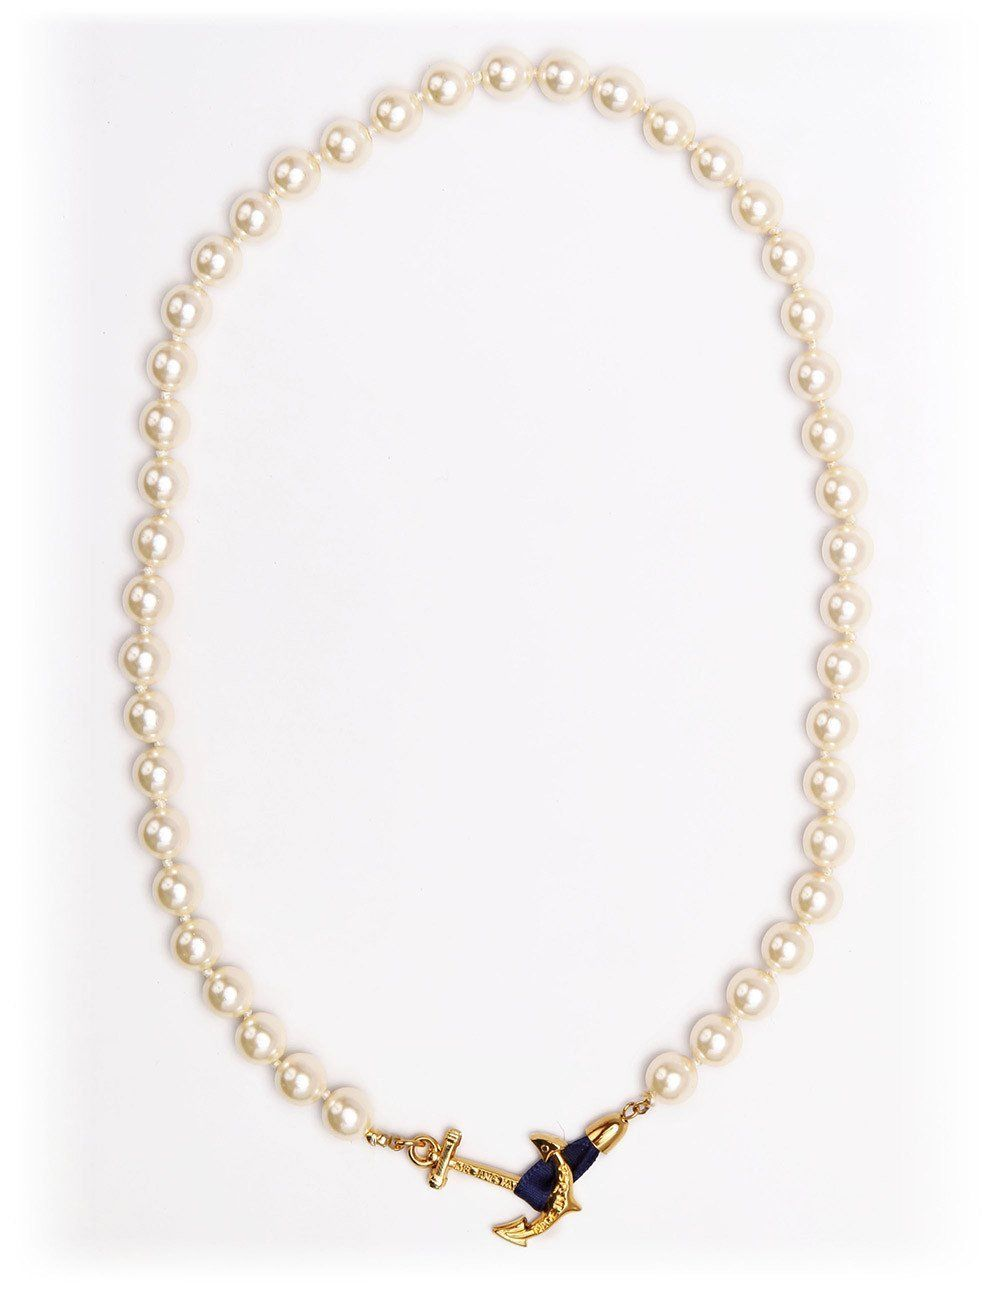 ef8e35da9cdcec Valerie Pearl Anchor Necklace by Kiel James Patrick | Products